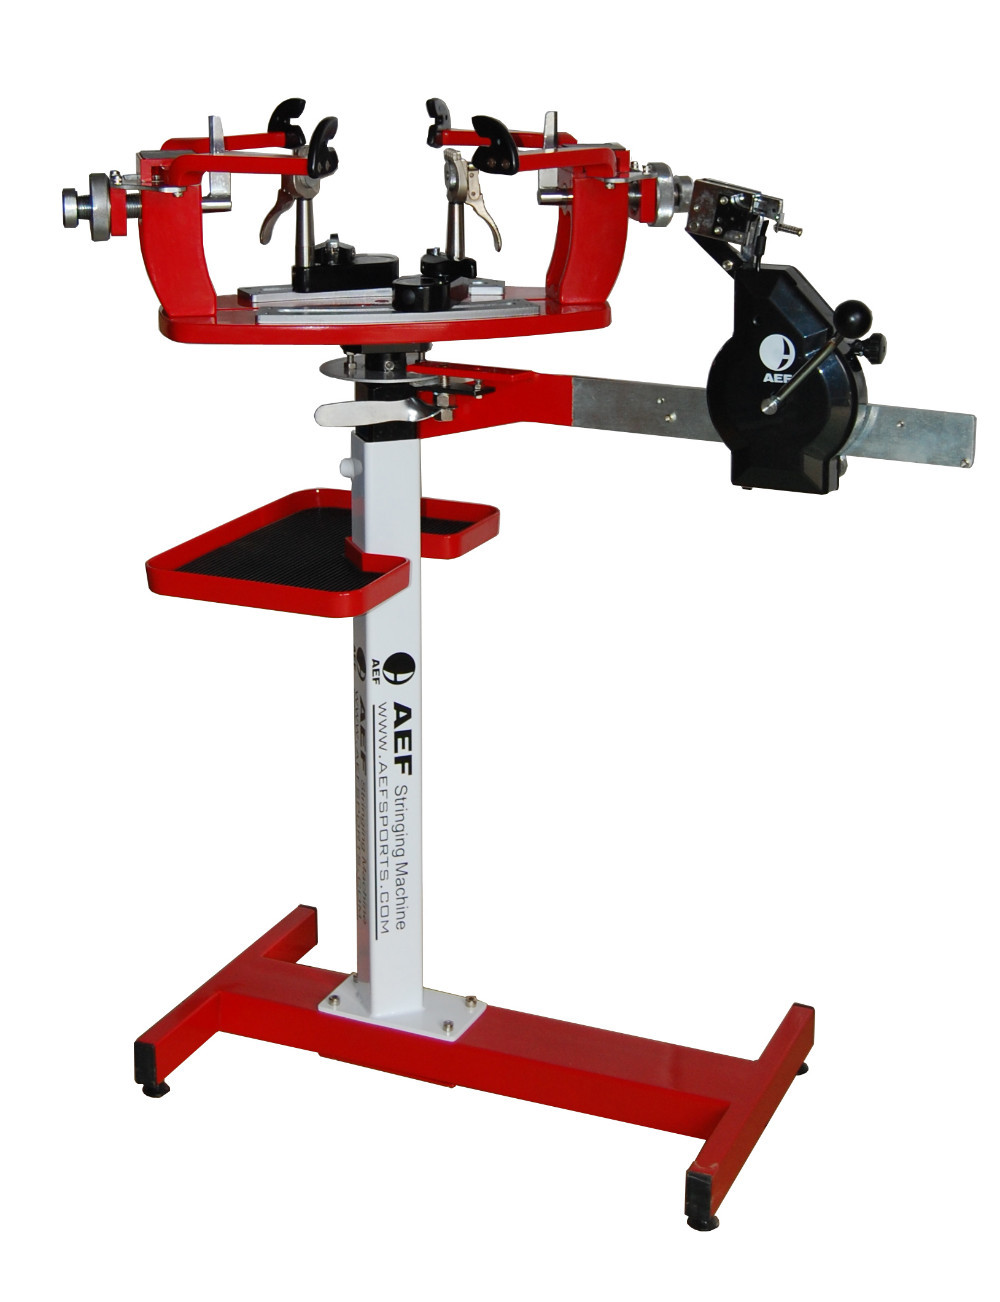 Tennis Stringing Machine >> Us 39 9 Aef Badminton Tennis Racket Racquet Stringing Machine Parts Track Steel Sliding Guide Bar Rail In Tennis Rackets From Sports